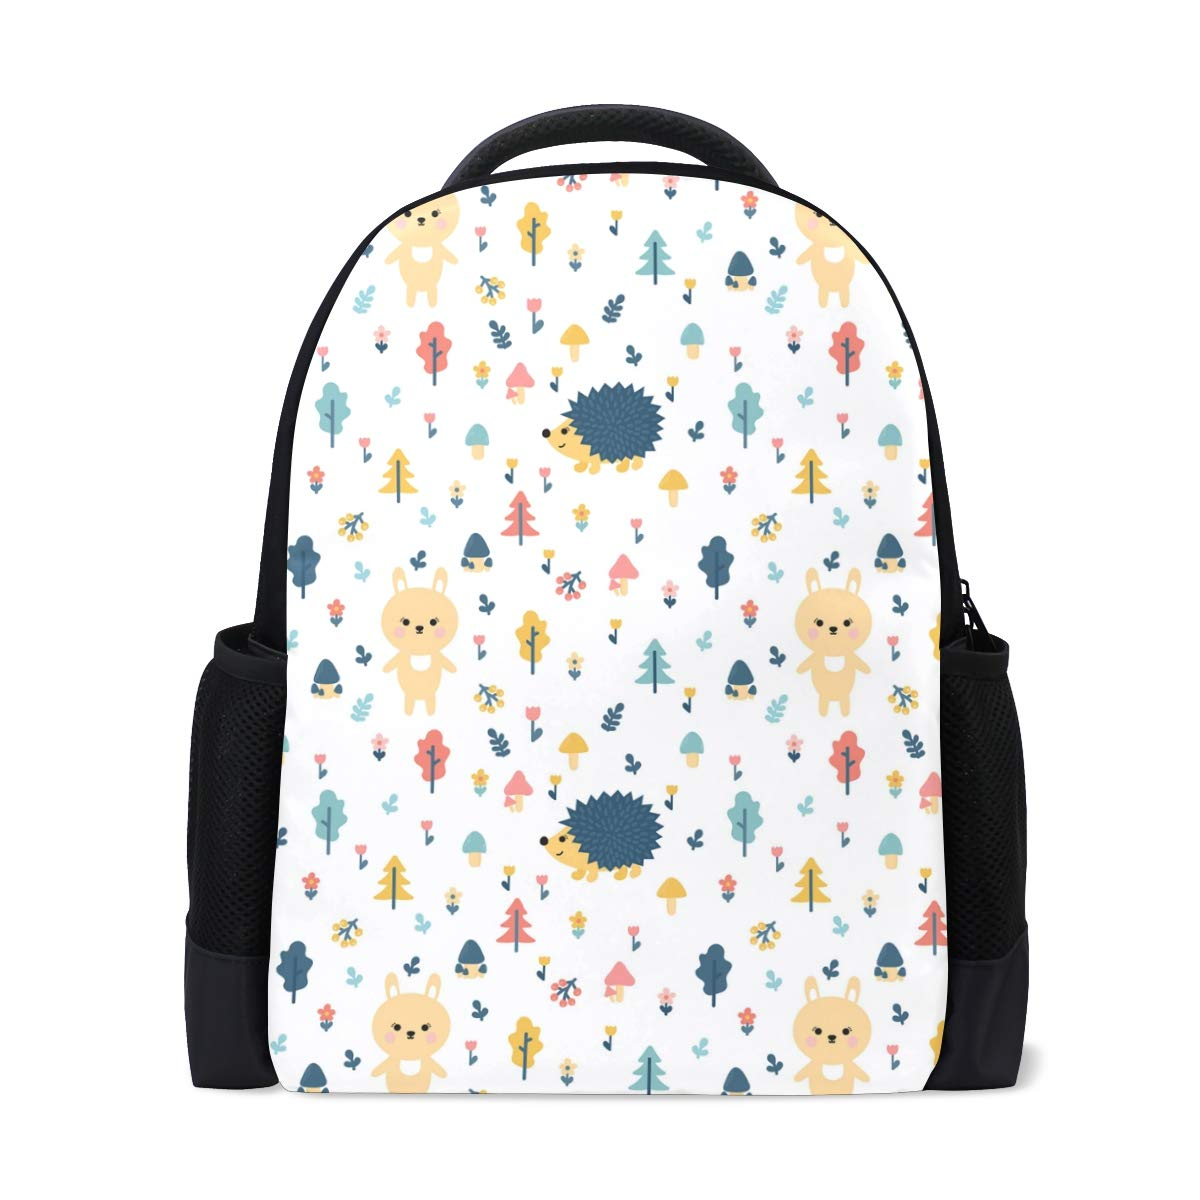 Christmas Bunny Hedgehog Image Backpack Bookbags Waterproof Travel Daypack Bag Rucksack